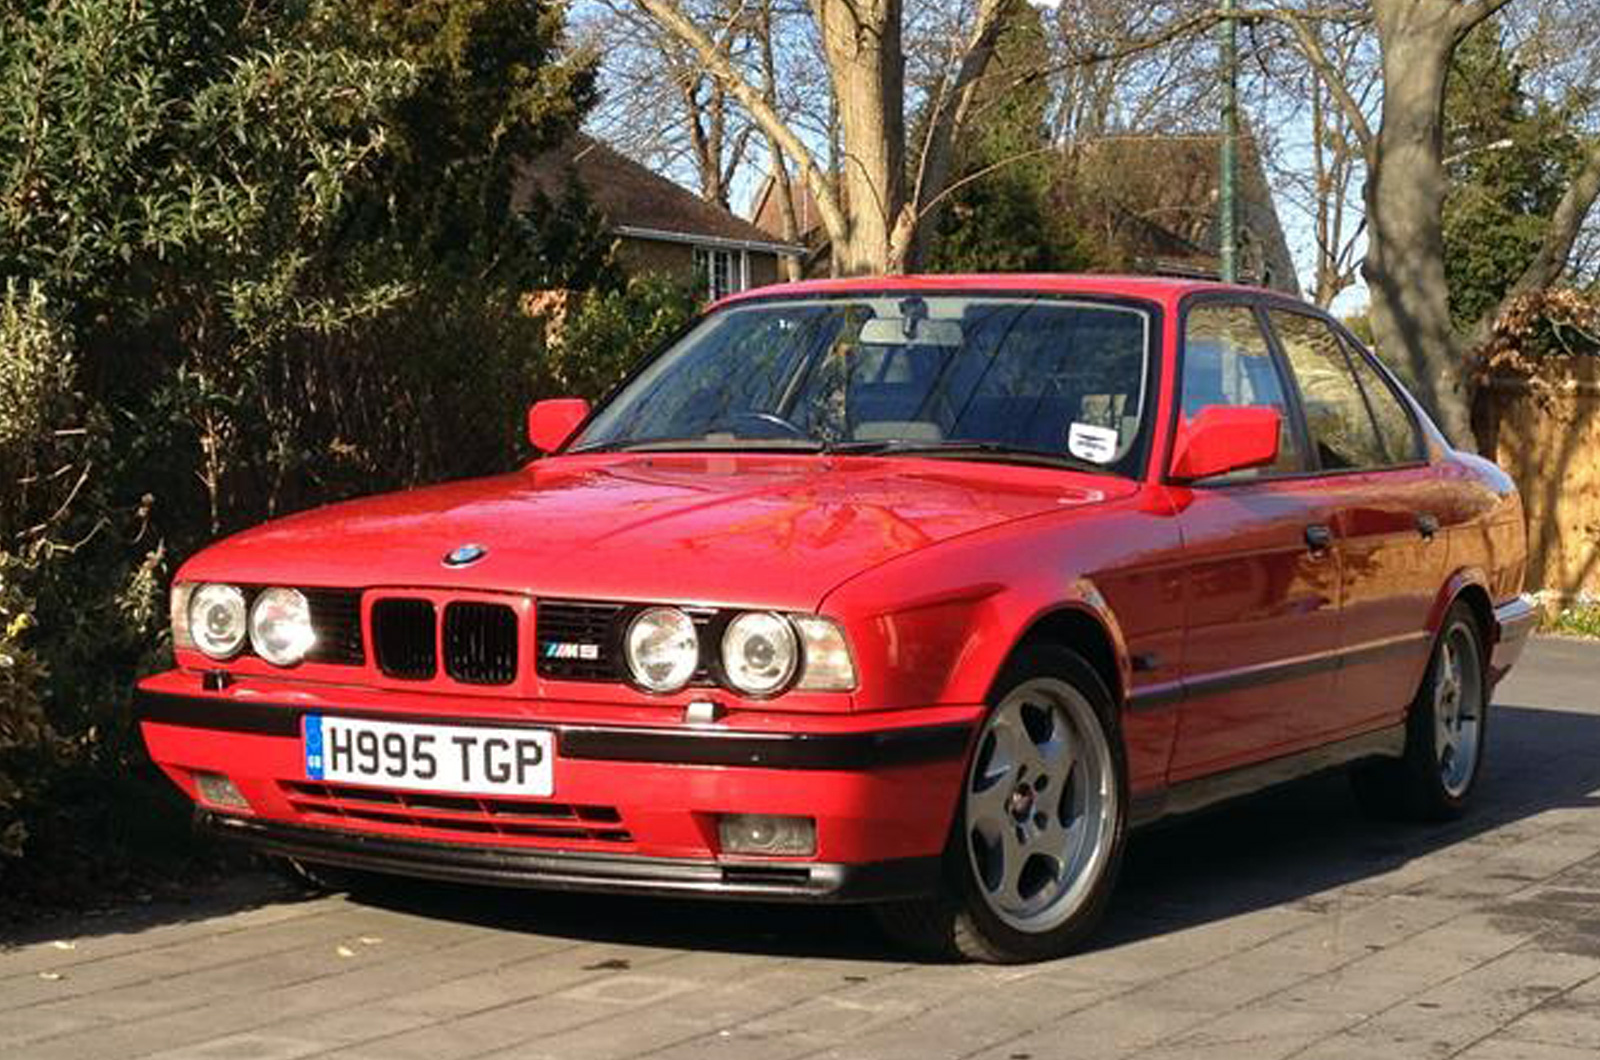 To Buy Or Not To Buy 1990 Bmw E34 M5 For 5850 Autocar